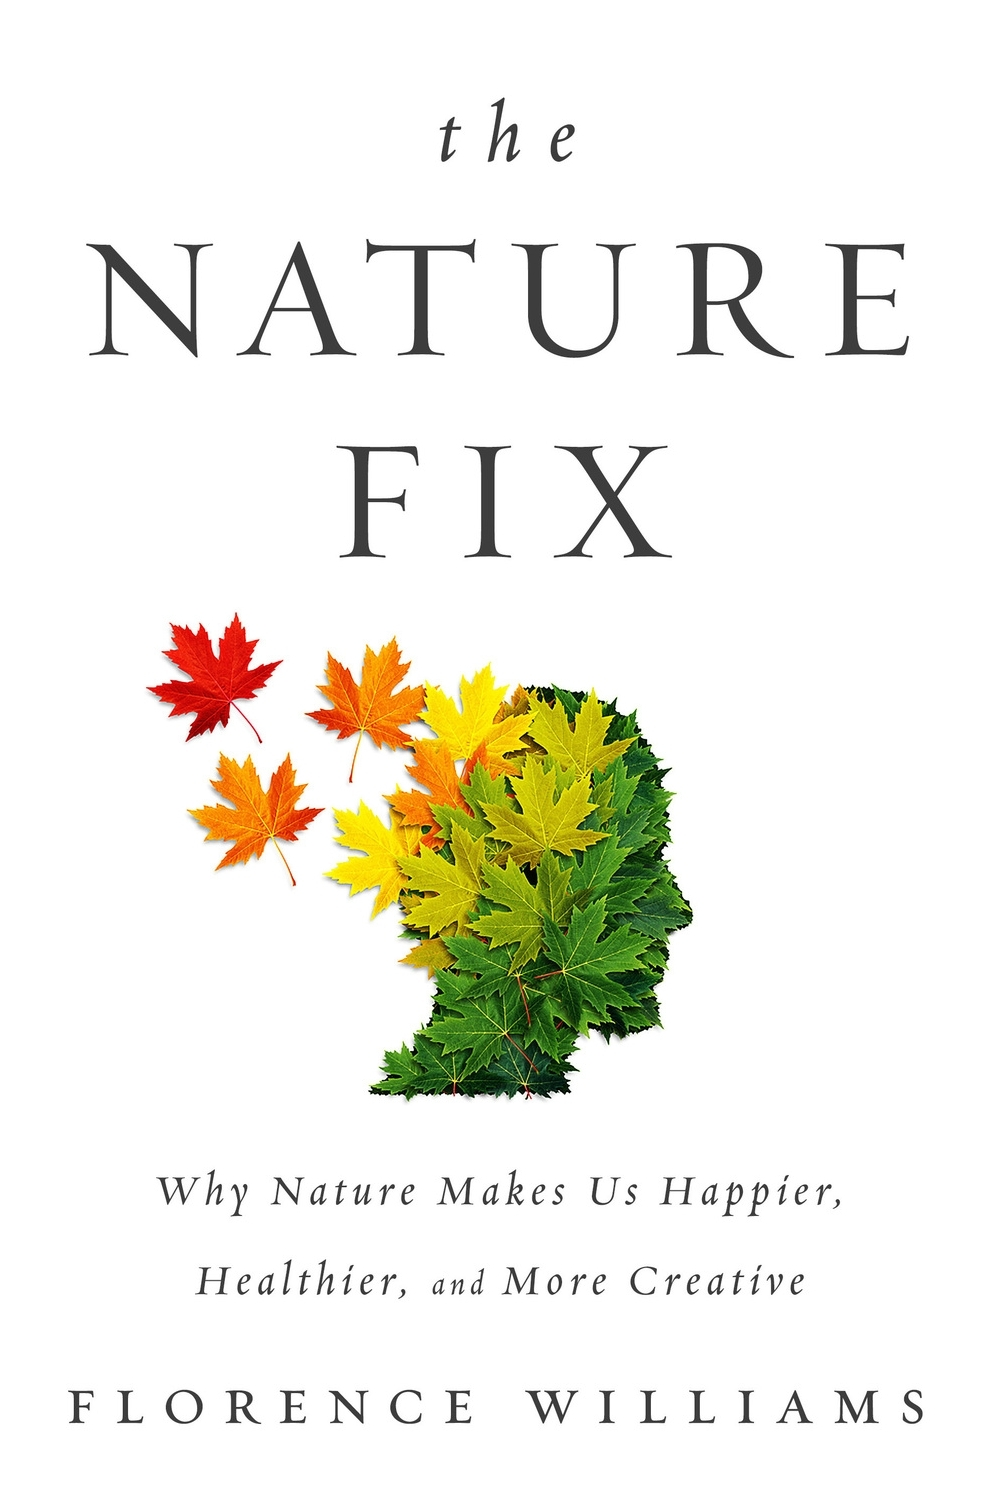 "The Nature Fix by Florence Williams - For centuries, poets and philosophers extolled the benefits of a walk in the woods: Beethoven drew inspiration from rocks and trees; Wordsworth composed while tromping over the heath; and Nikola Tesla conceived the electric motor while visiting a park. Intrigued by our storied renewal in the natural world, Florence Williams set out to uncover the science behind nature's positive effects on the brain.In this informative and entertaining account, Williams investigates cutting-edge research as she travels to fragrant cypress forests in Korea to meet the rangers who administer ""forest healing programs,"" to the green hills of Scotland and its ""ecotherapeutic"" approach to caring for the mentally ill, to a river trip in Idaho with Iraqi vets suffering from PTSD, to the West Virginia mountains where she discovers how being outside helps children with ADHD. The Nature Fix demonstrates that our connection to nature is much more important to our cognition than we think and that even small amounts of exposure to the living world can improve our creativity and enhance our mood. In prose that is incisive, witty, and urgent, Williams shows how time in nature is not a luxury but is in fact essential to our humanity. As our modern lives shift dramatically indoors, these ideas—and the answers they yield—are more urgent than ever. (From Goodreads)"